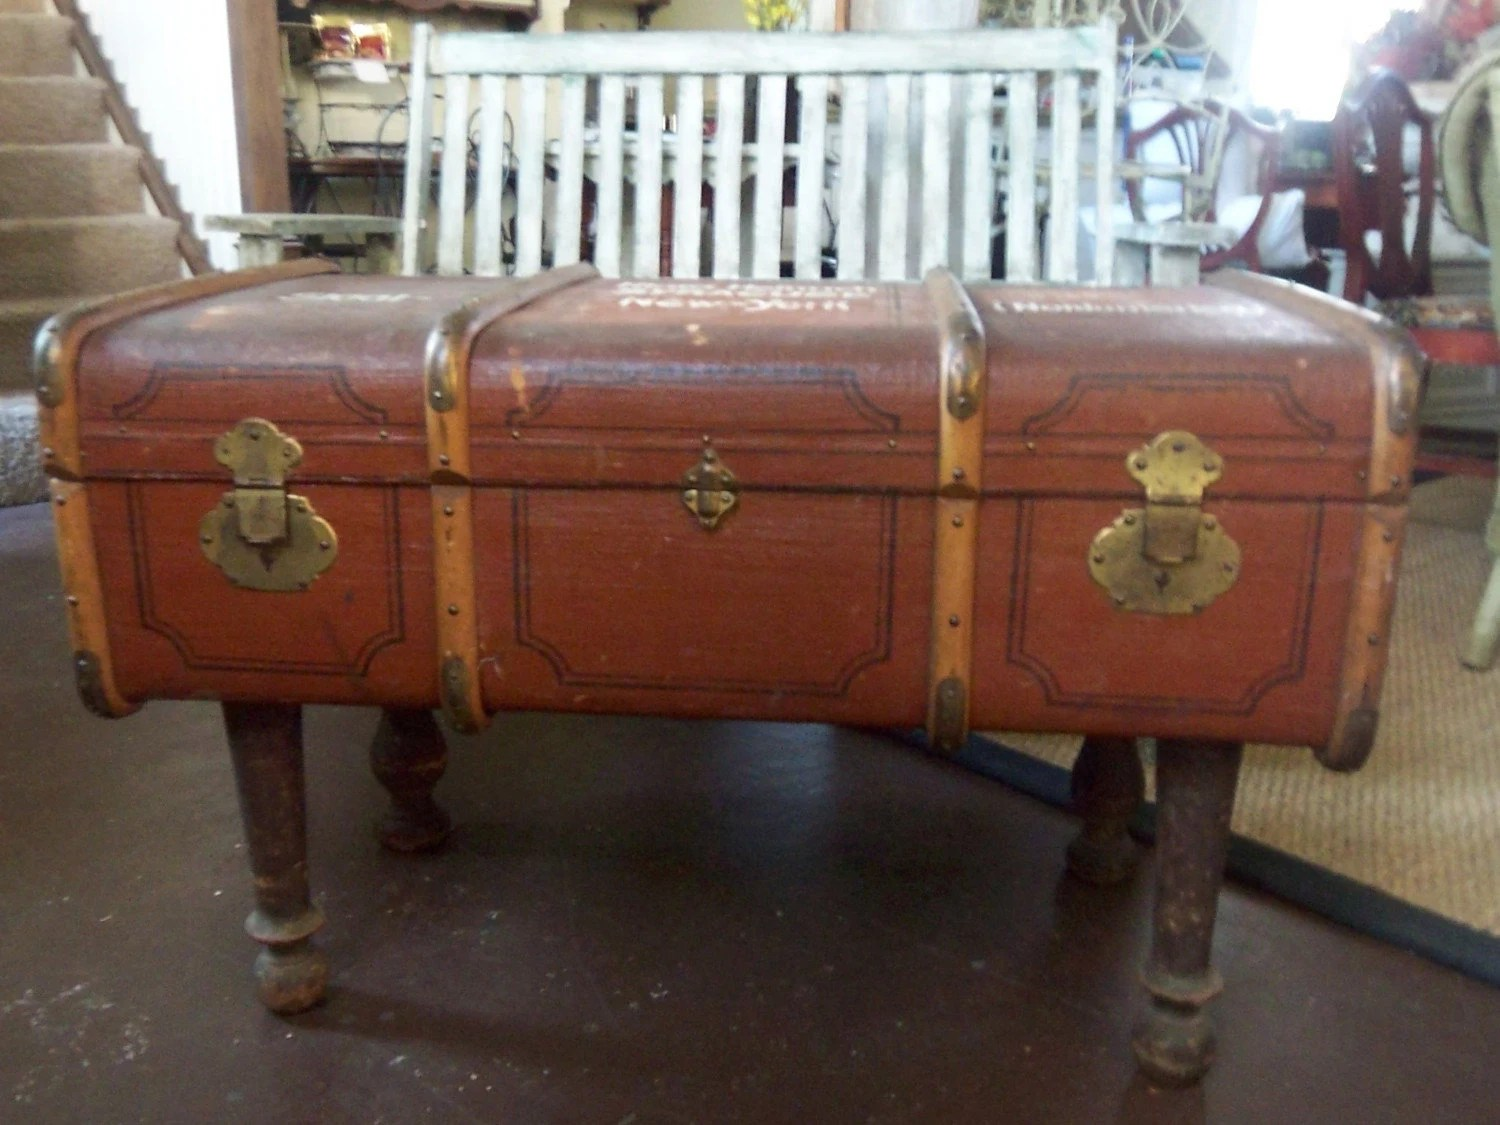 Vintage Suitcase Trunk Coffee Table